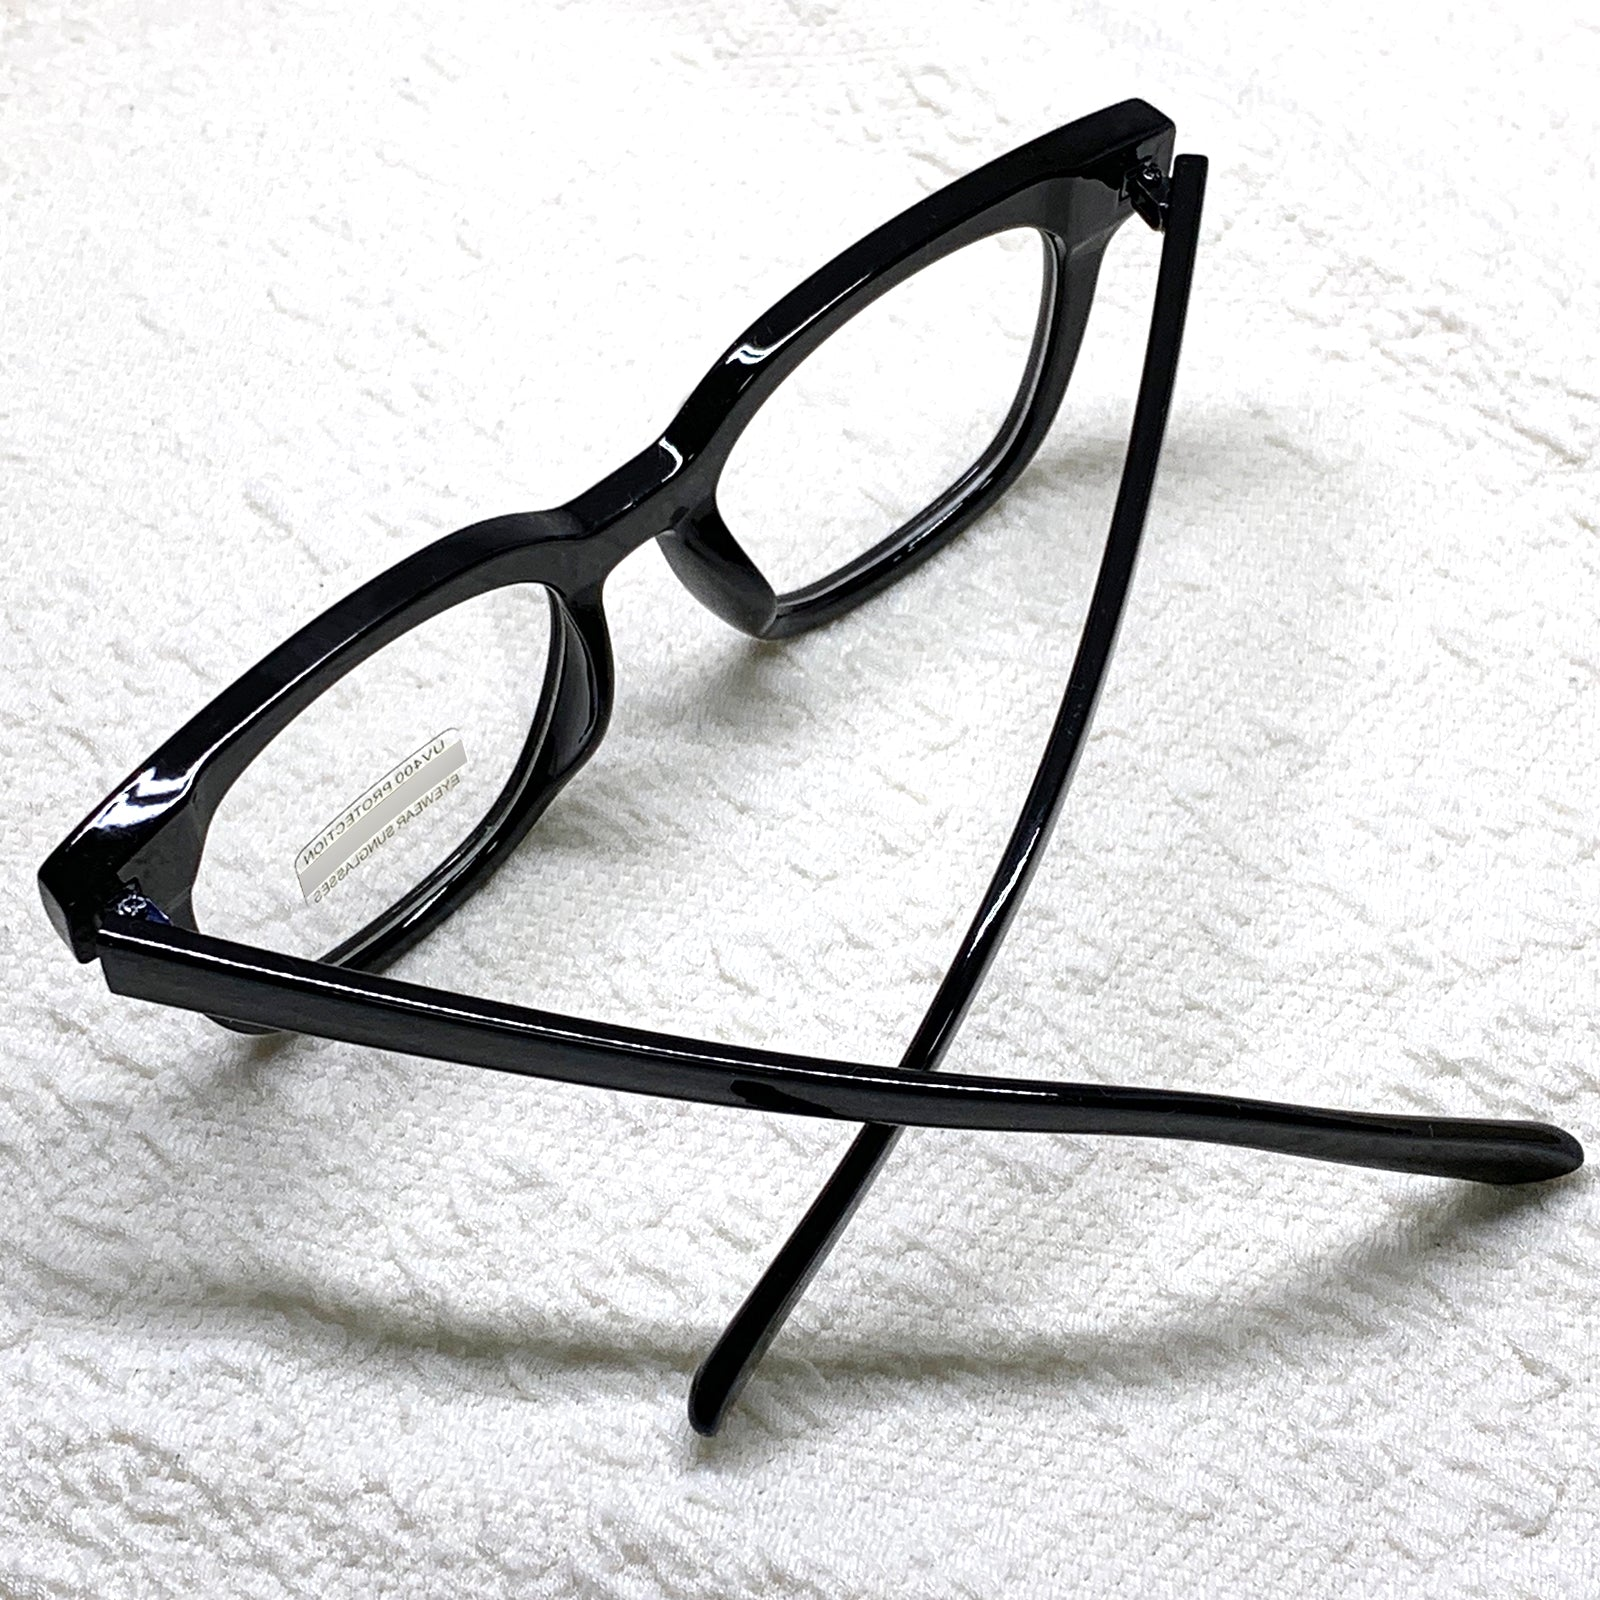 ENCACC Nerd Geek Oversize Eye Glasses UV400 Clear Lens Spectacles Black 89101 - ENCACC